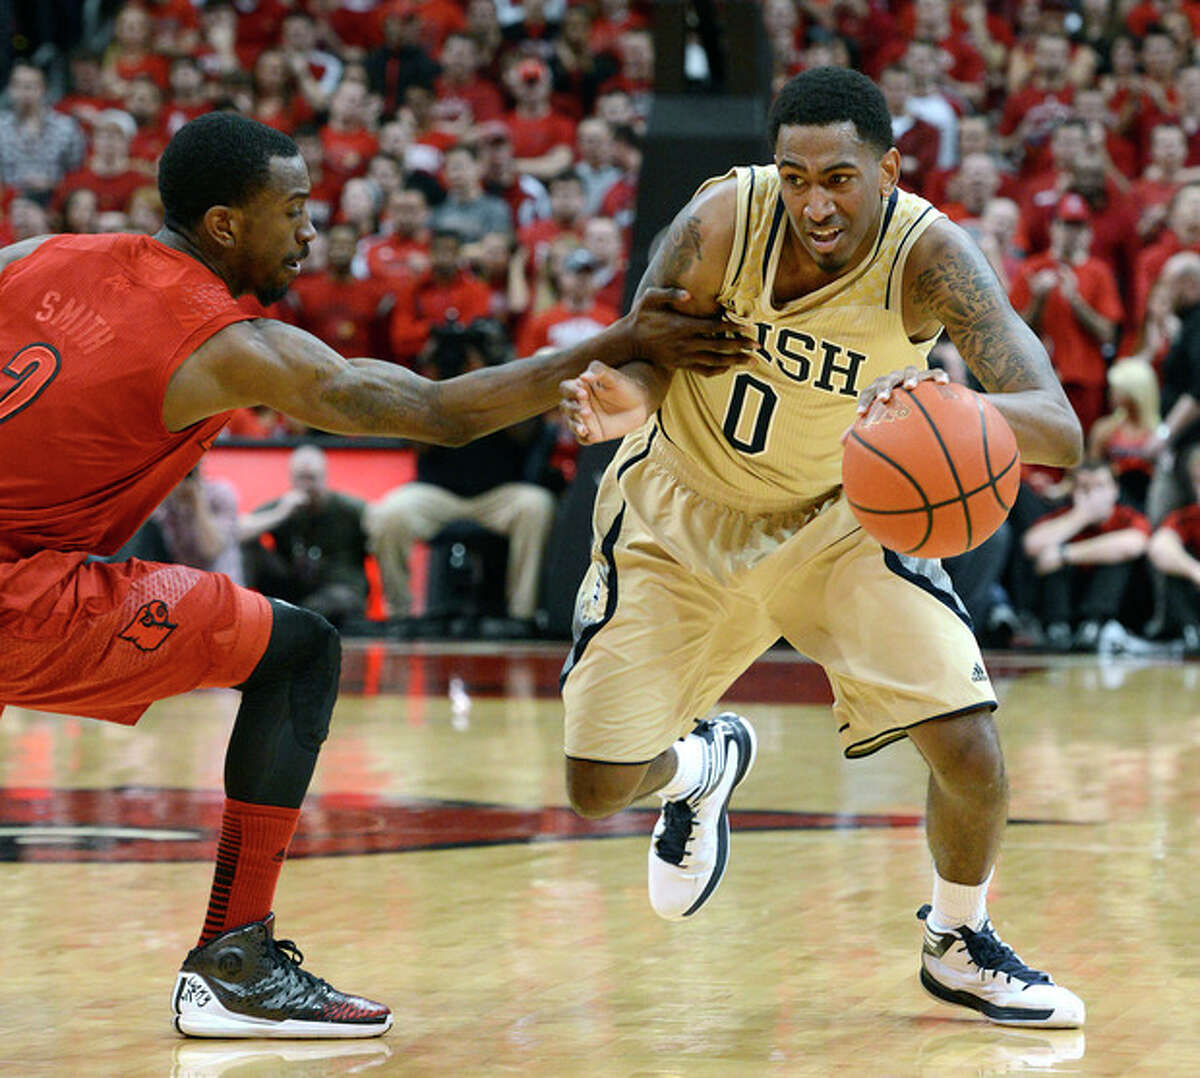 Notre Dame's Eric Atkins, right, drives around the defense of Louisville's Russ Smith during the first half of an NCAA college basketball game on Saturday, March 9, 2013, in Louisville, Ky. Louisville defeated Notre Dame 73-57. (AP Photo/Timothy D. Easley)